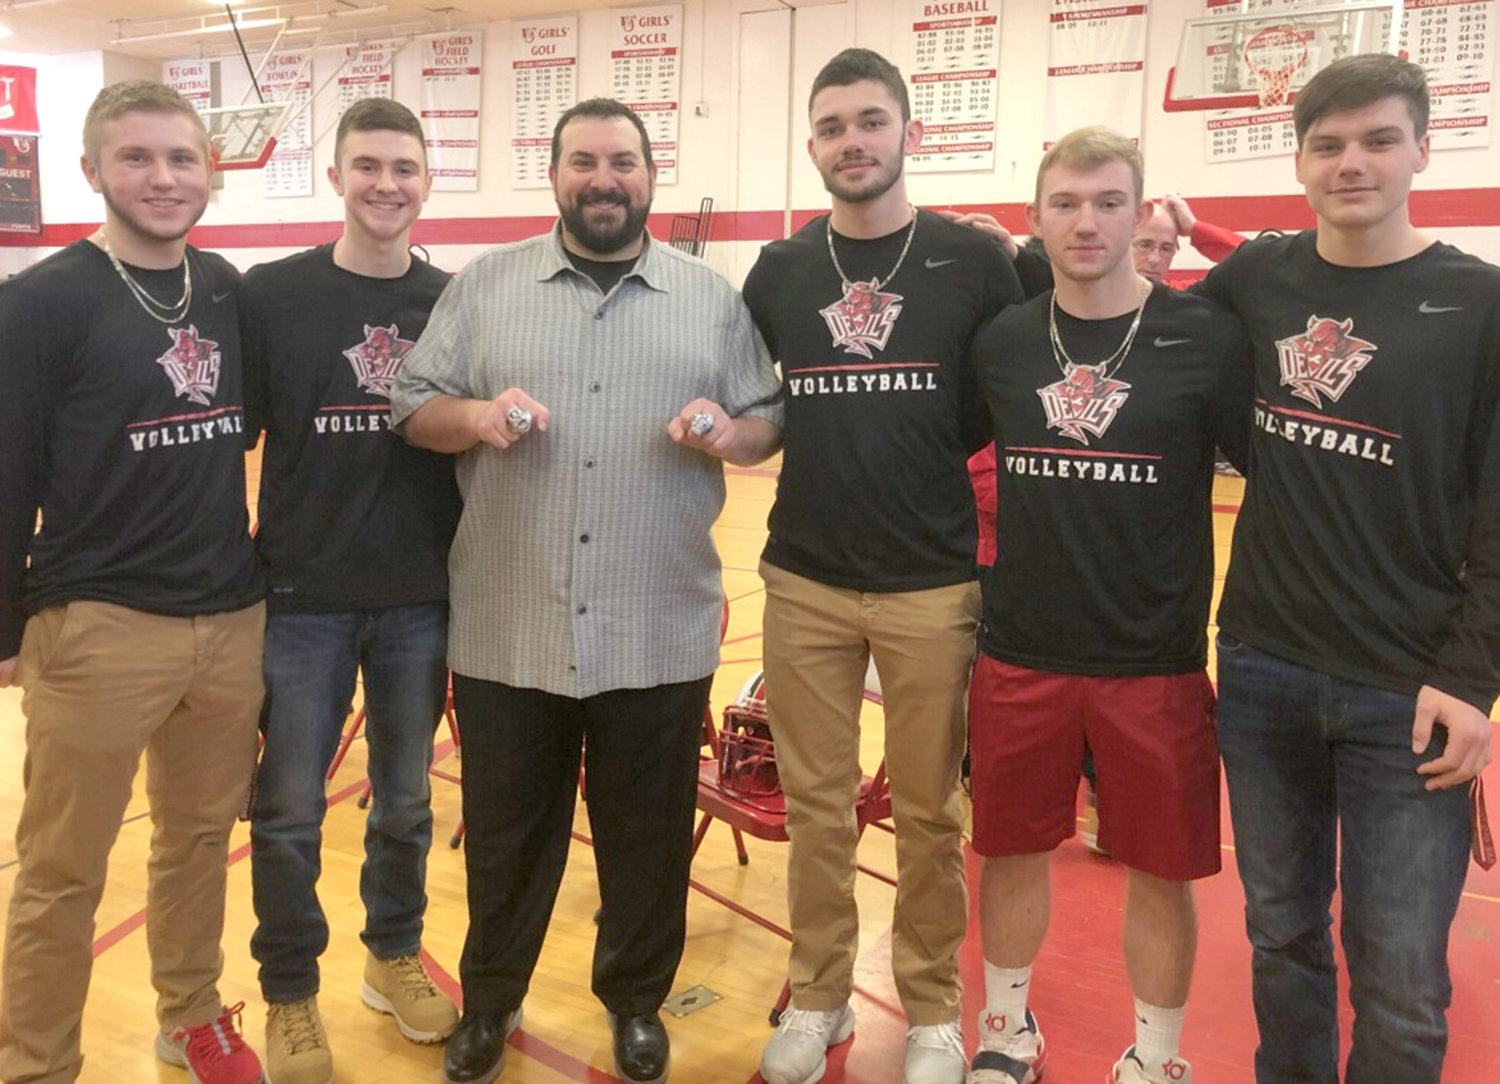 NFL COACH AT VVS — Detroit Lions pro football head coach Matt Patricia, third from left, visits his alma mater Vernon-Verona-Sherrill High School Friday morning. Patricia, who won two Super Bowls when he was defensive coordinator of the New England Patriots, shows off his rings. Among VVS students with him, from left: Ryan Shantal, Gavin Miller, Adam Durfee, Cole Smith and Eli Creedon.